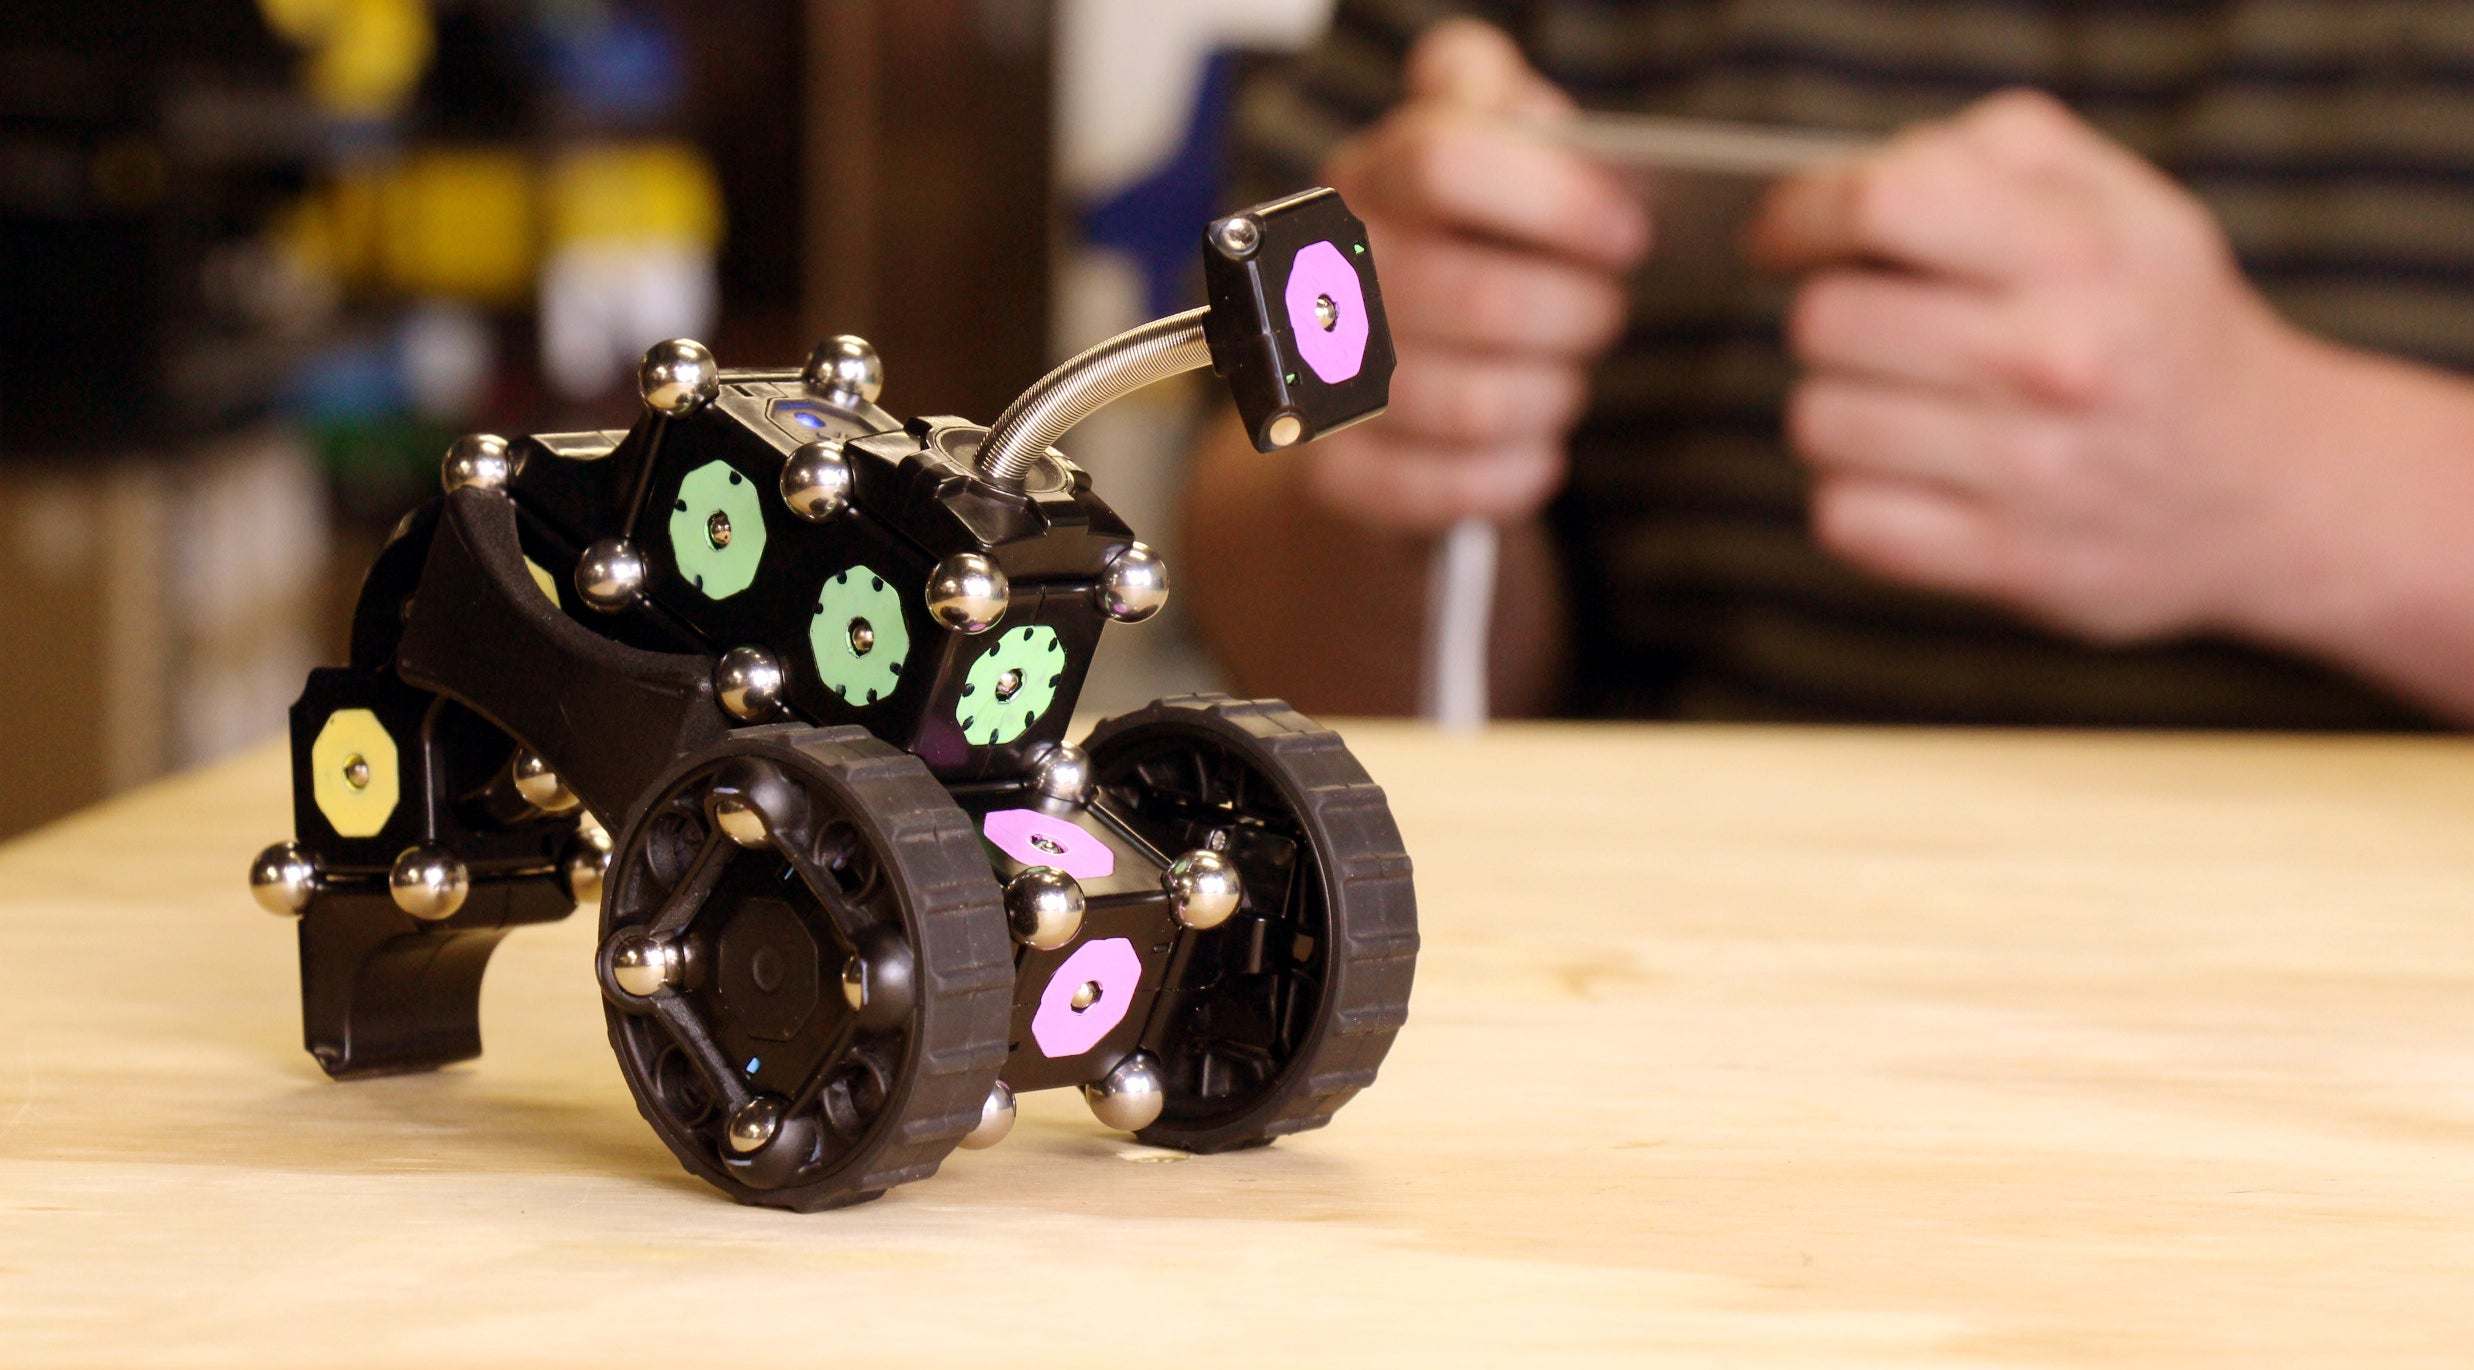 The Modular Robots Are Coming, One Toy At A Time